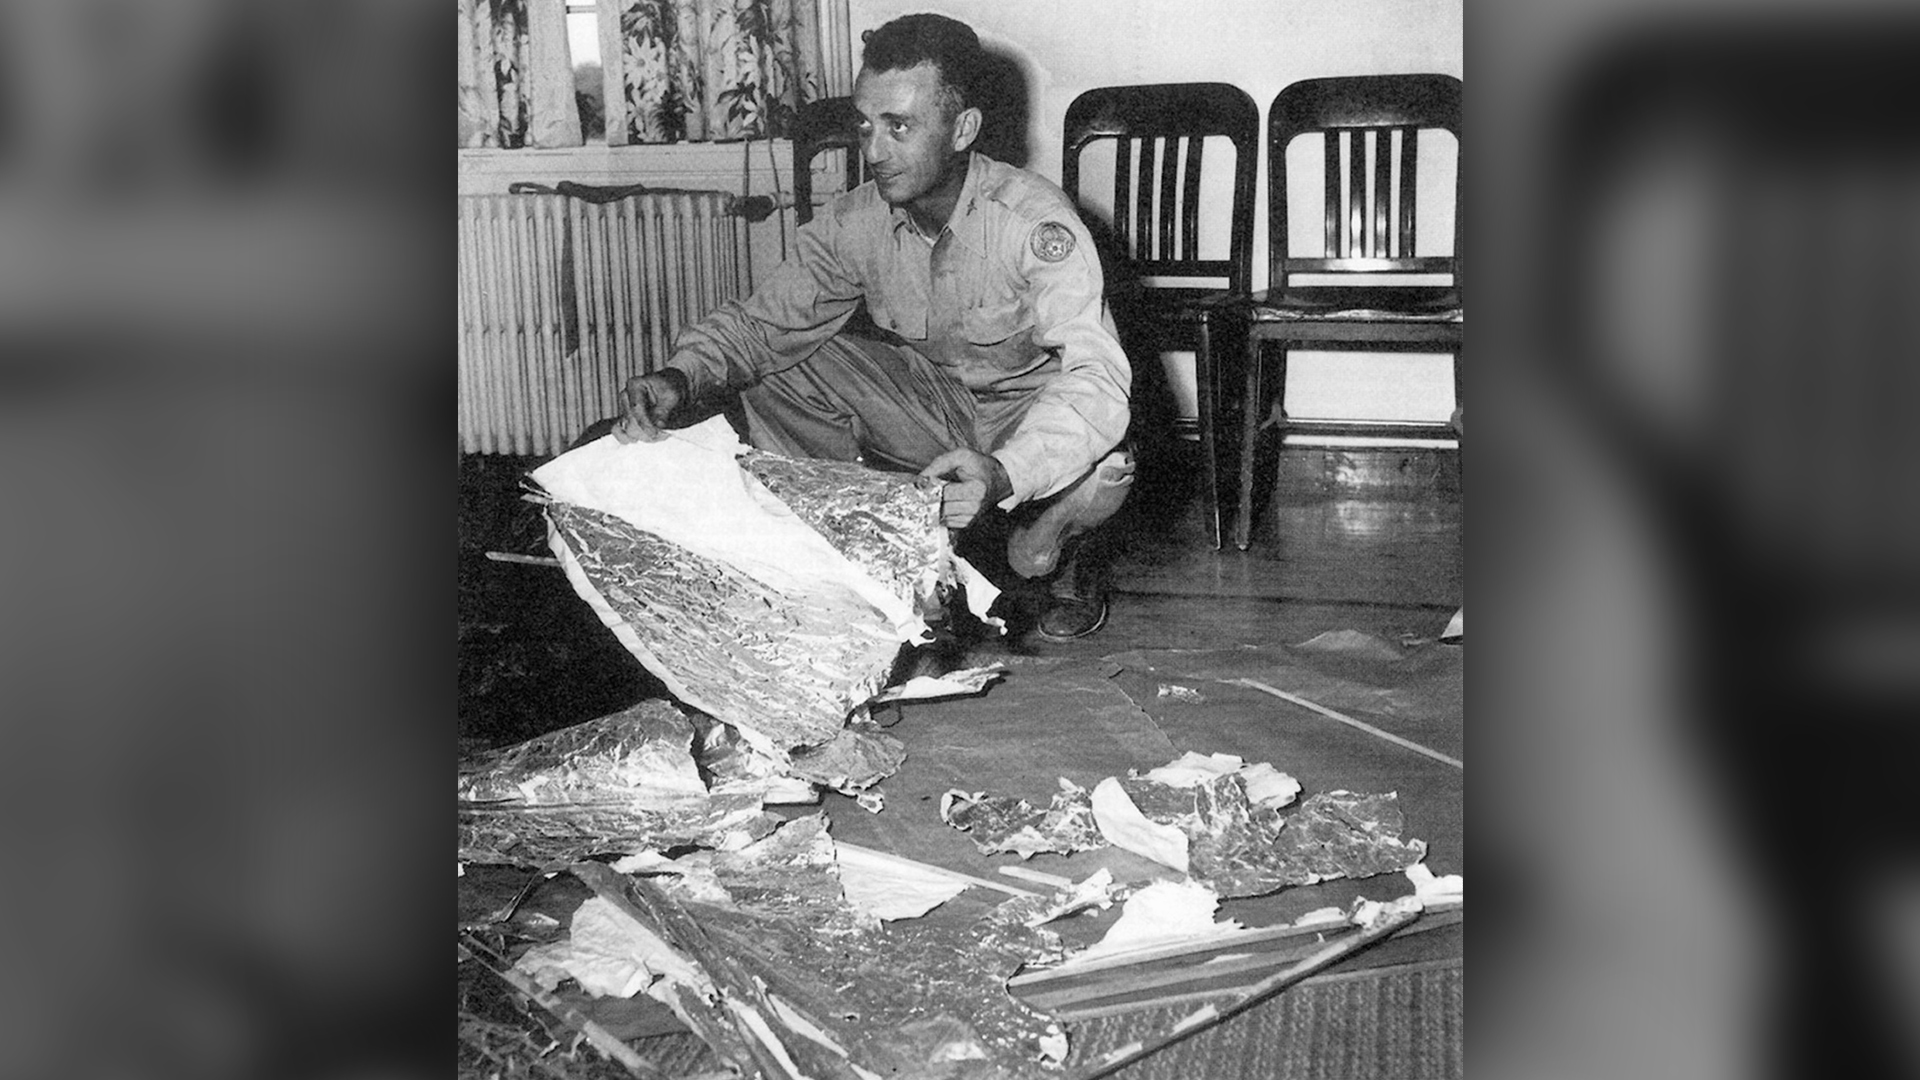 Major Jesse Marcel, head intelligence officer at the Roswell Army Air Field, investigated and recovered some of the debris from the Roswell UFO site in 1947.